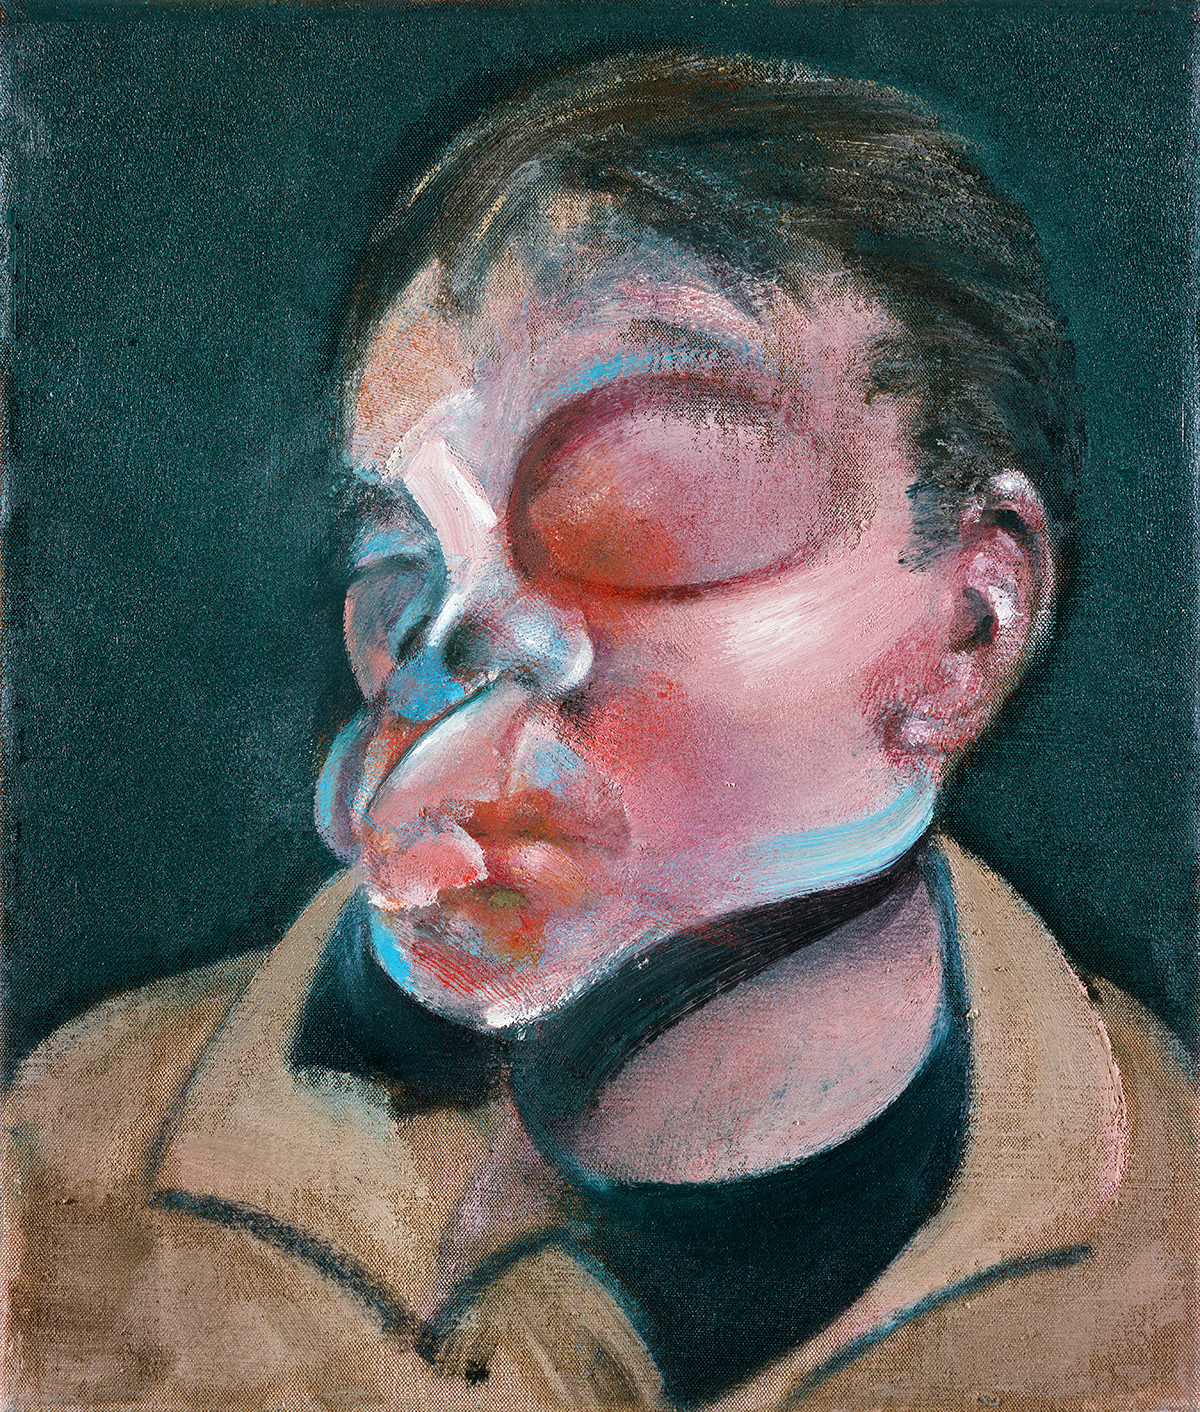 Francis Bacon, Self- Portrait with Injured Eye, 1972. Oil on canvas.  CR no 72-02. © The Estate of Francis Bacon/ DACS London 2019. All rights reserved.